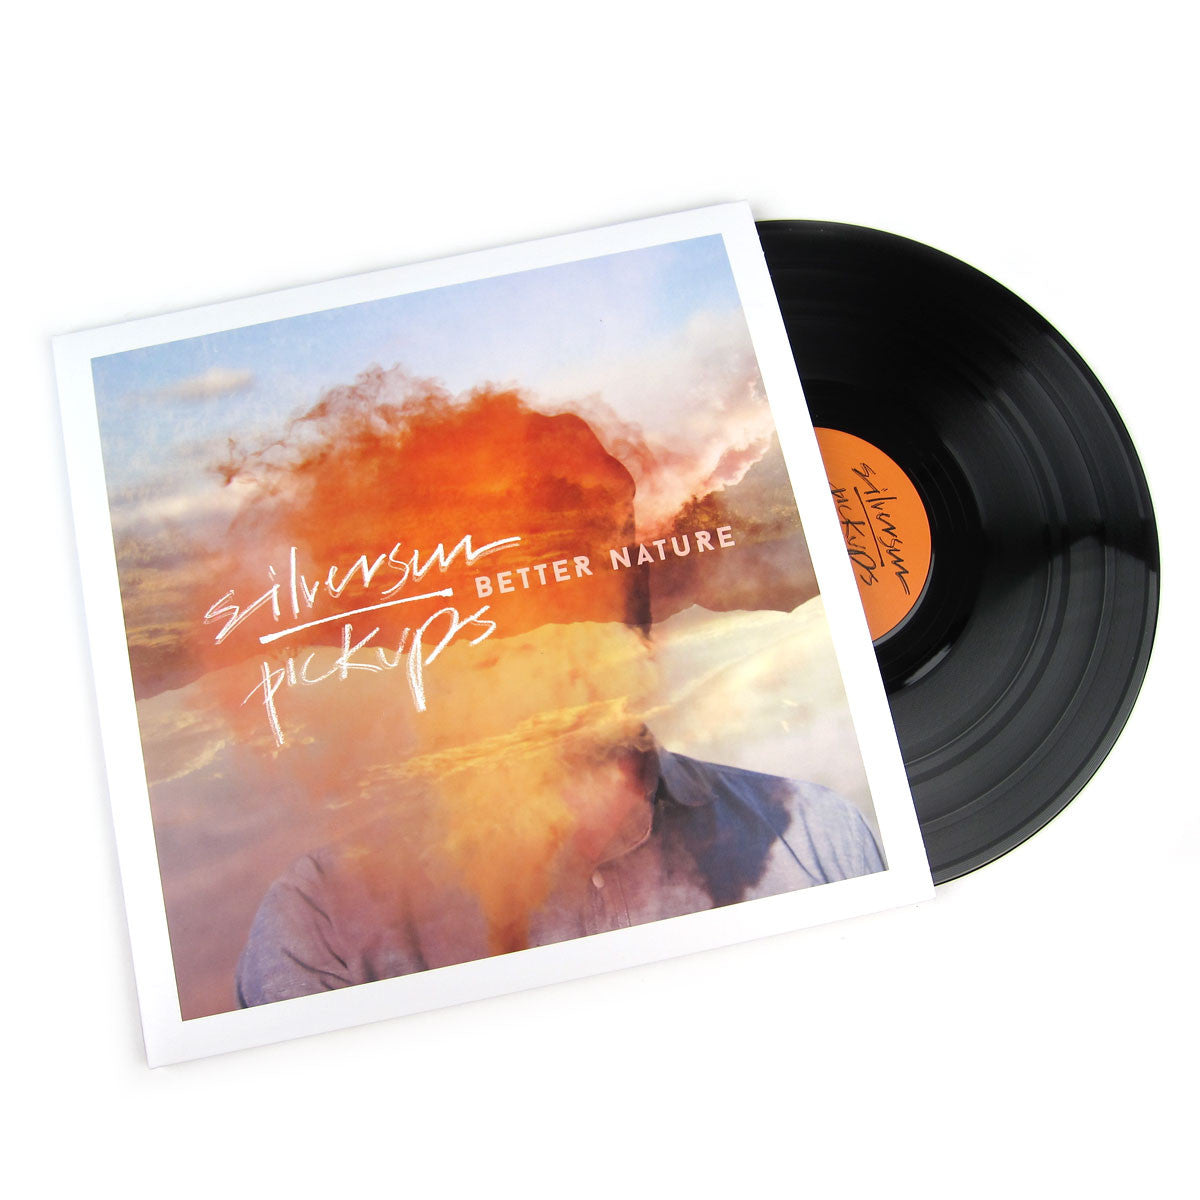 Silversun Pickups: Better Nature (180g) Vinyl 2LP